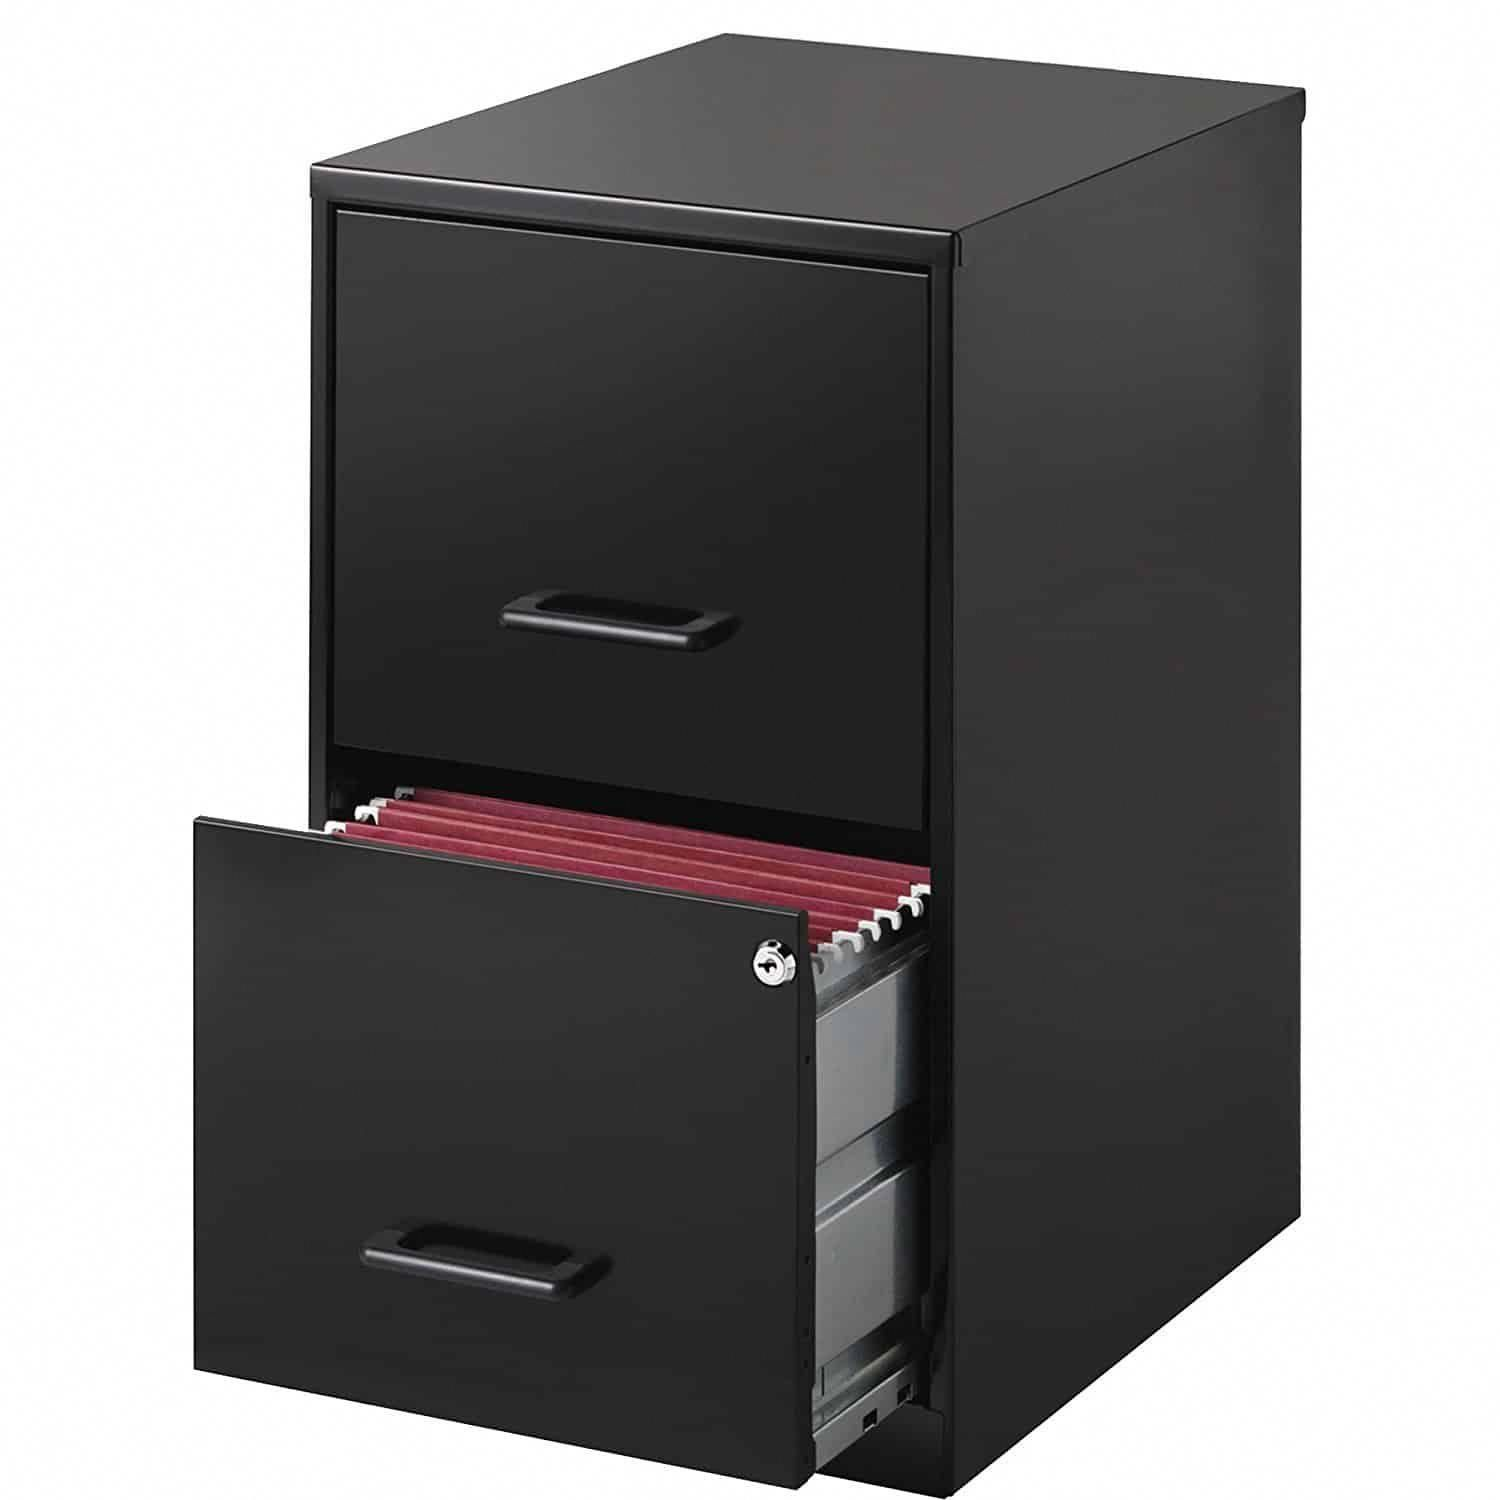 Lorell Deep Drawer File Cabinet remodelingtools